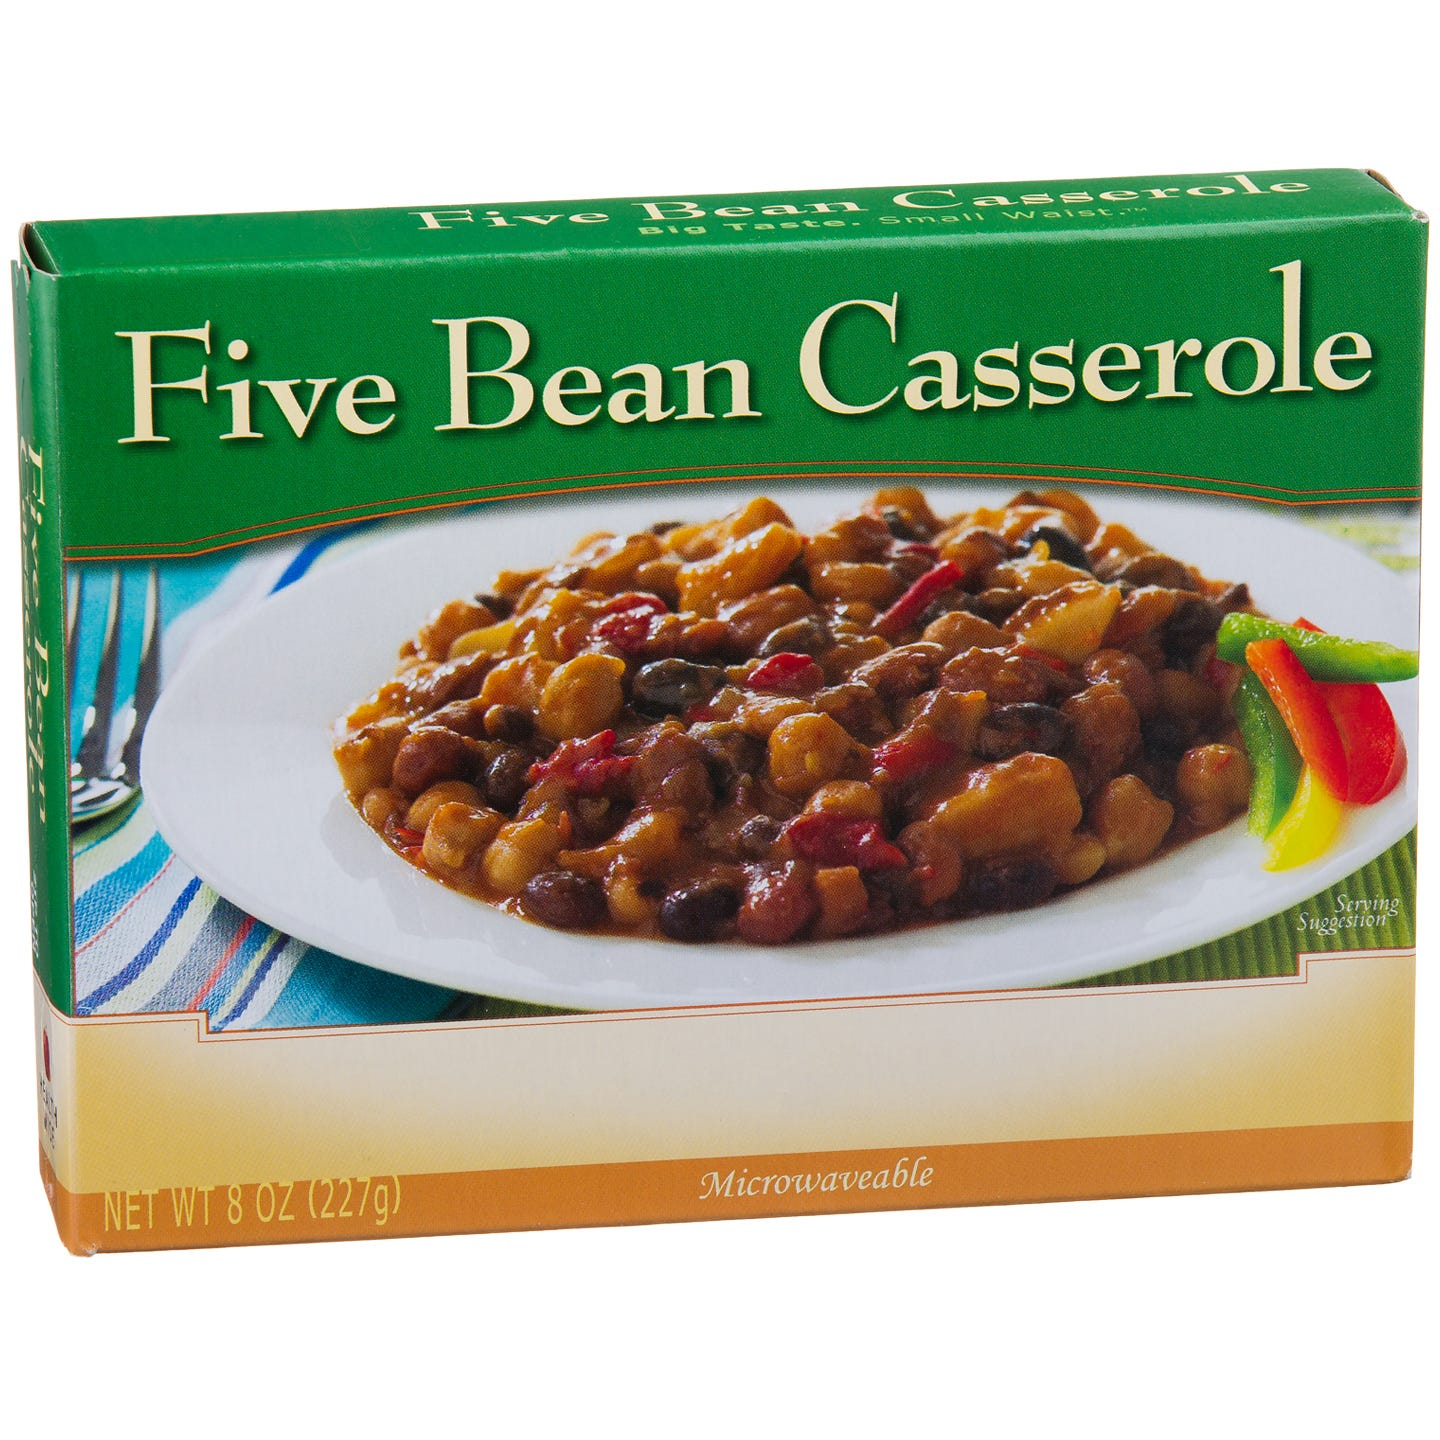 Low Calorie Meal Five Bean Casserole 8 oz, BariWise - Rapid Diet Weight Loss Products Shop